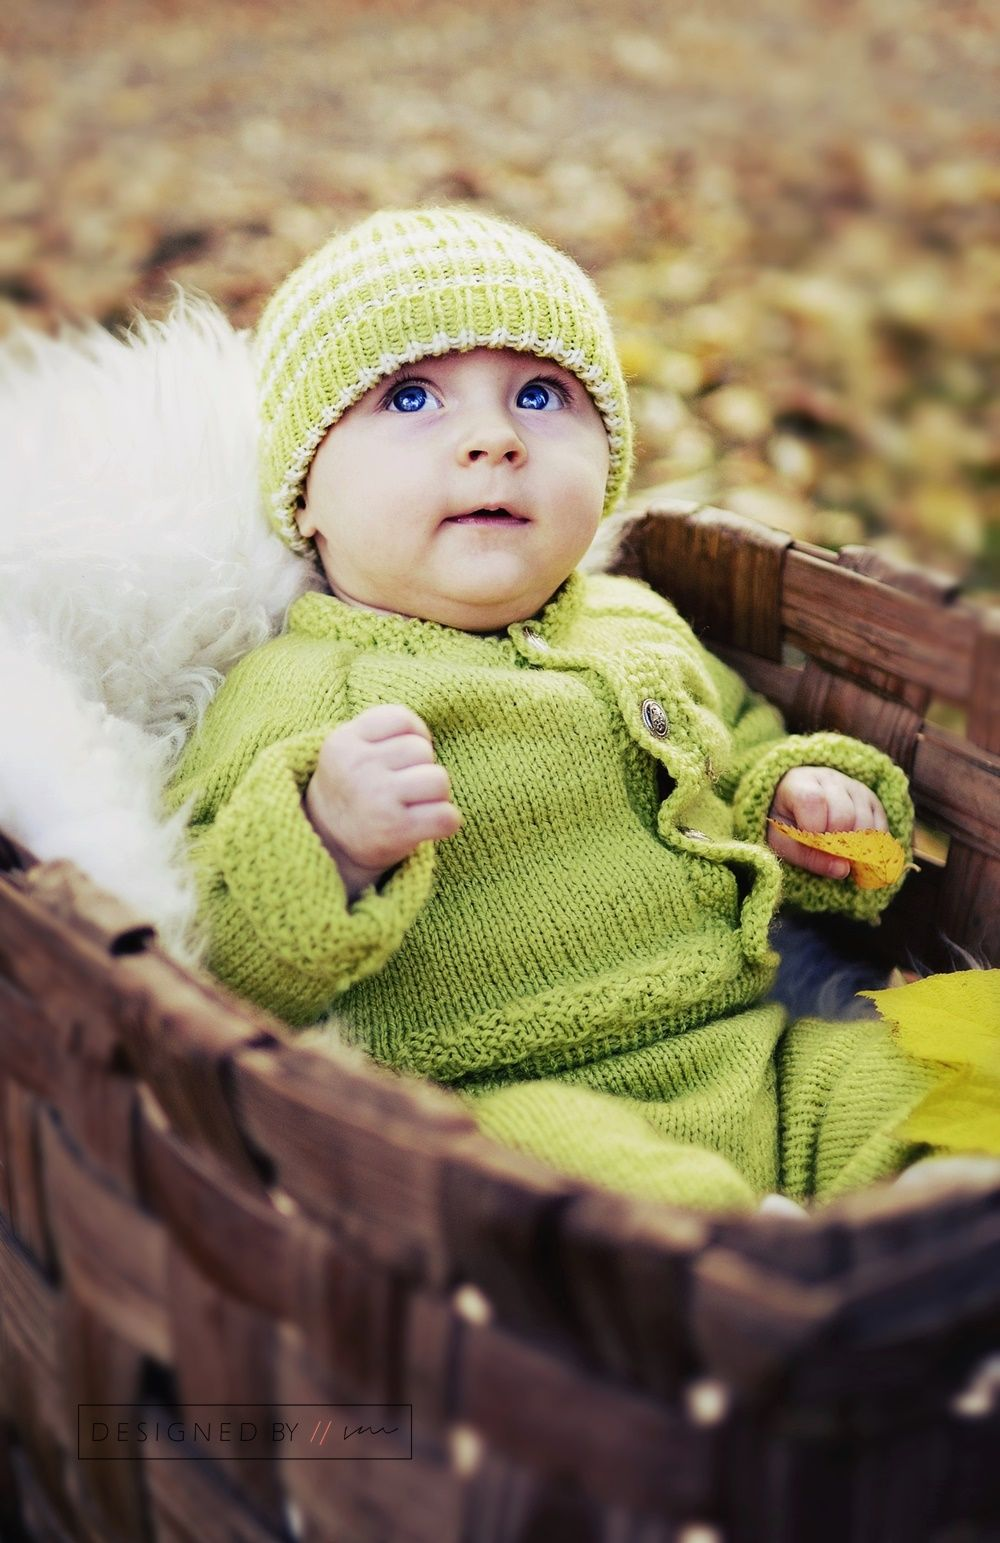 SYKSYINEN LAPSIKUVAUS // AUTUMN BABY PHOTO SHOOT